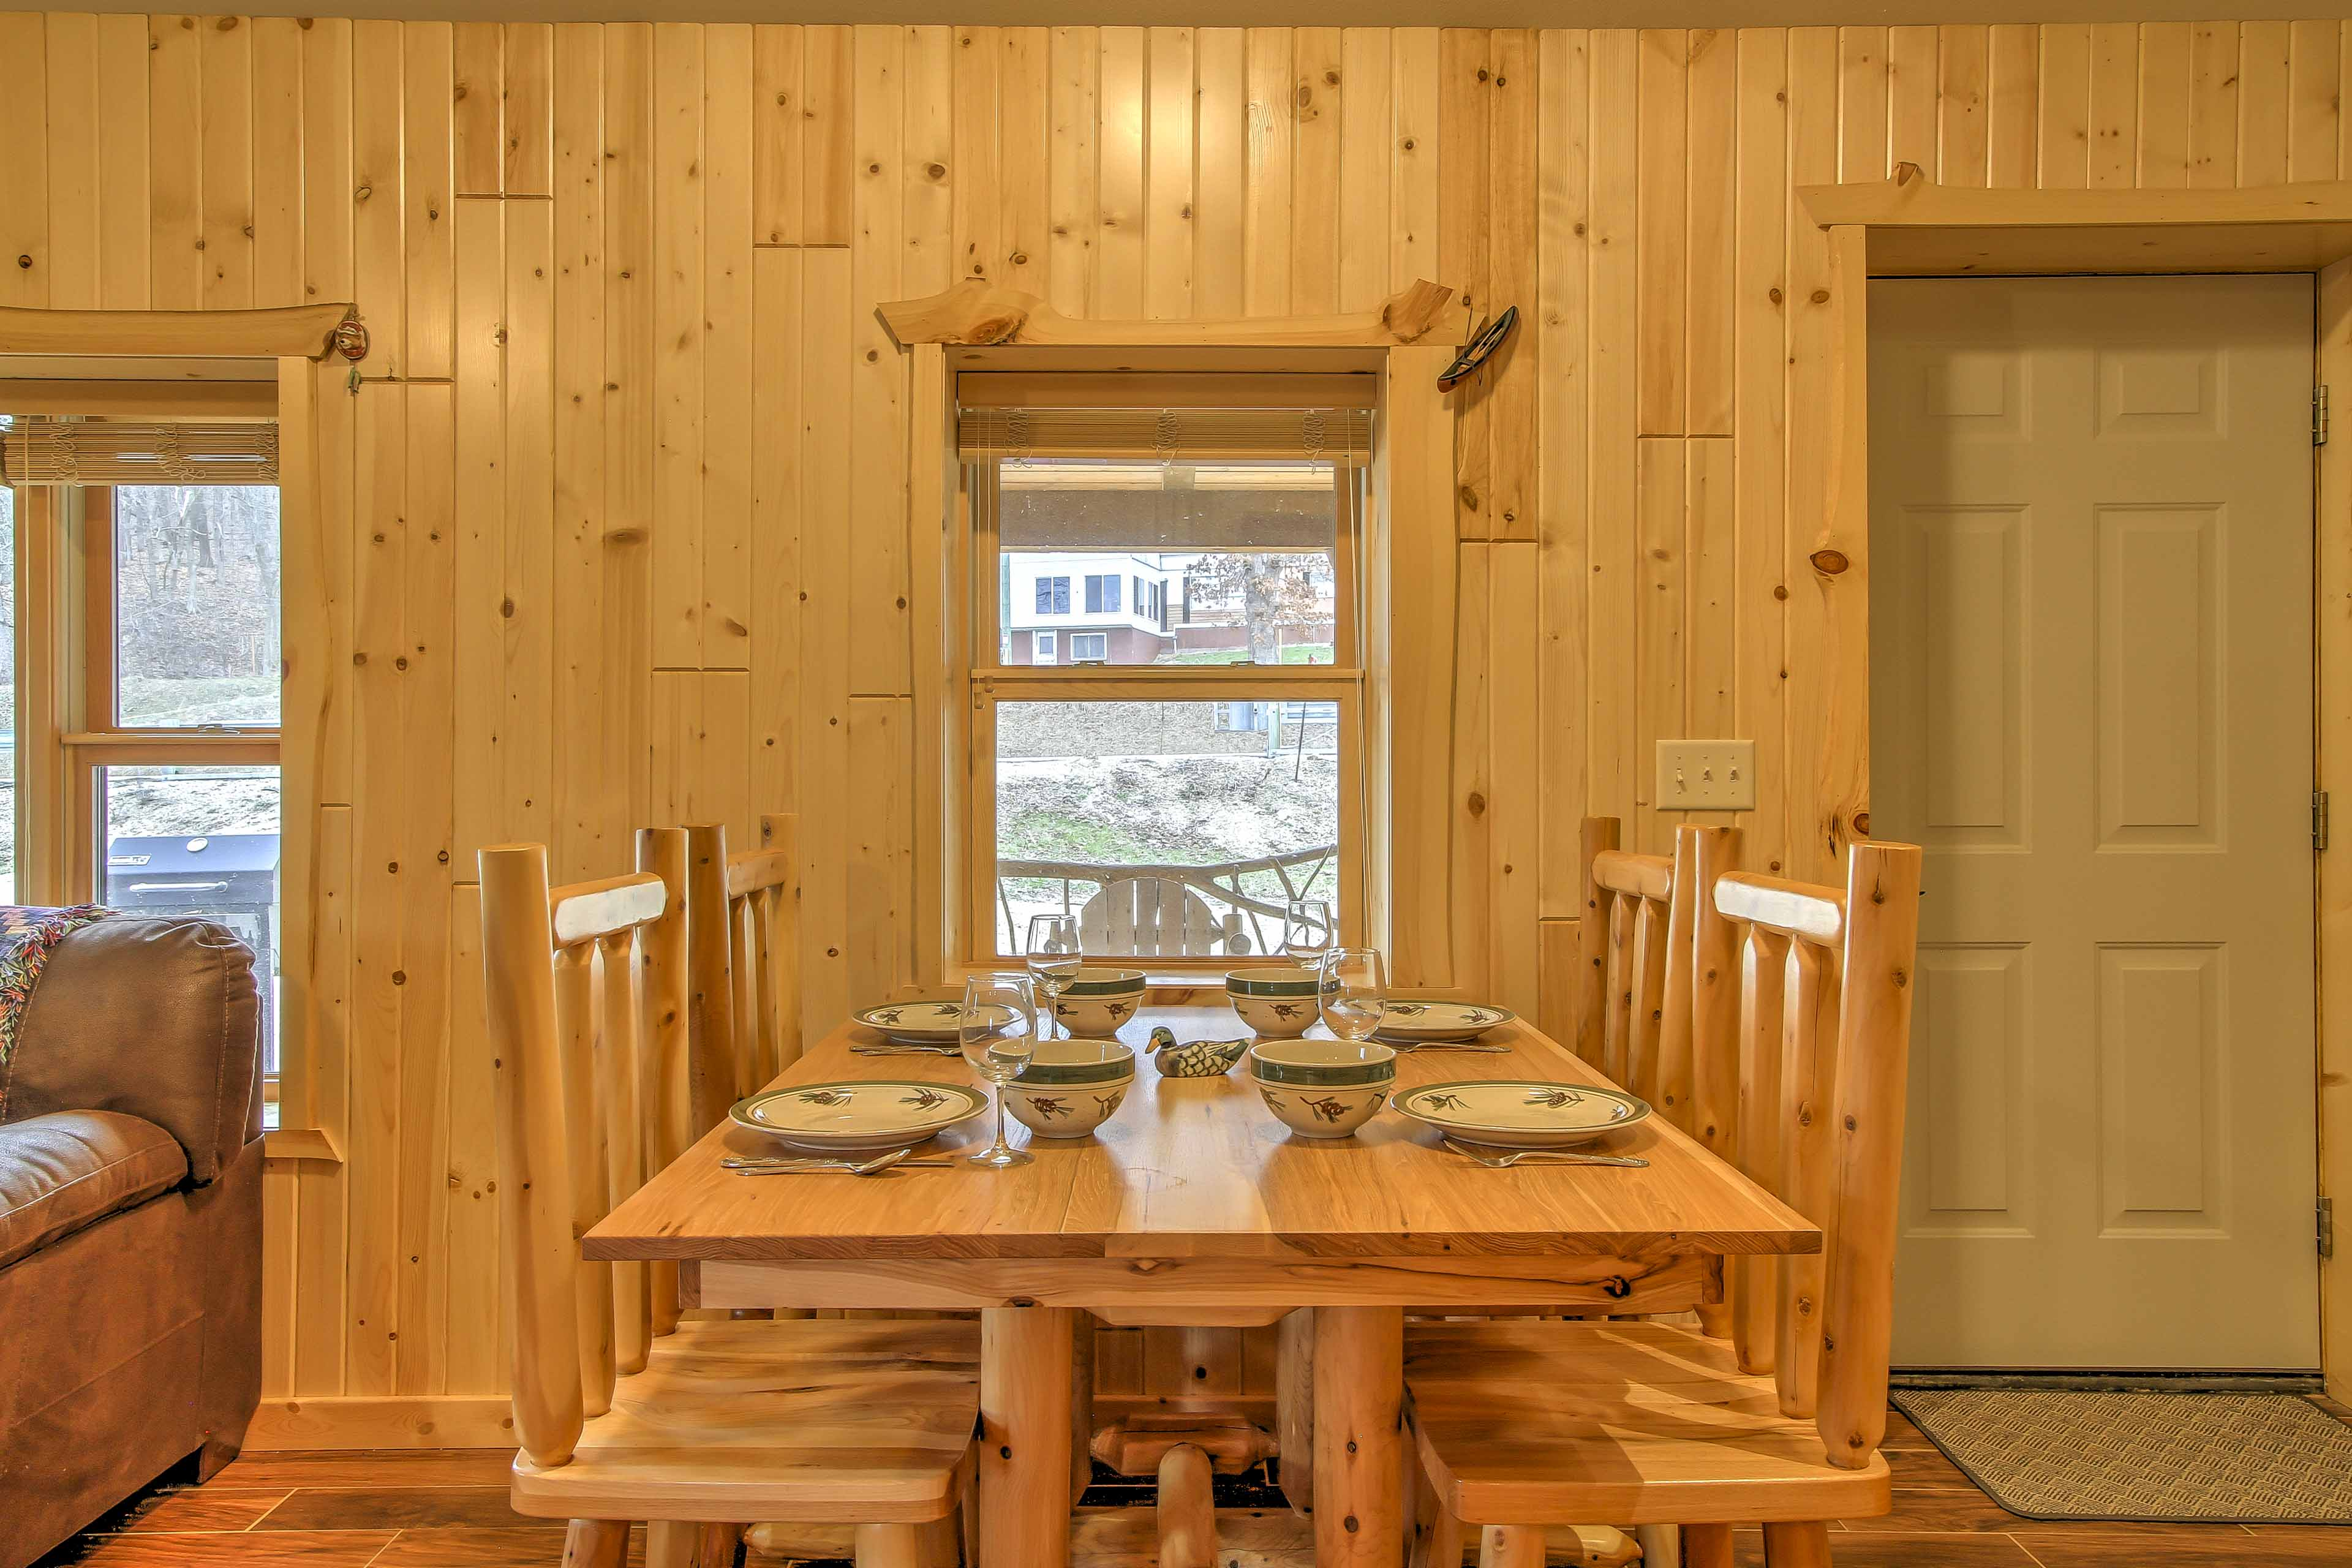 Dine at the kitchen table with seating for 4.